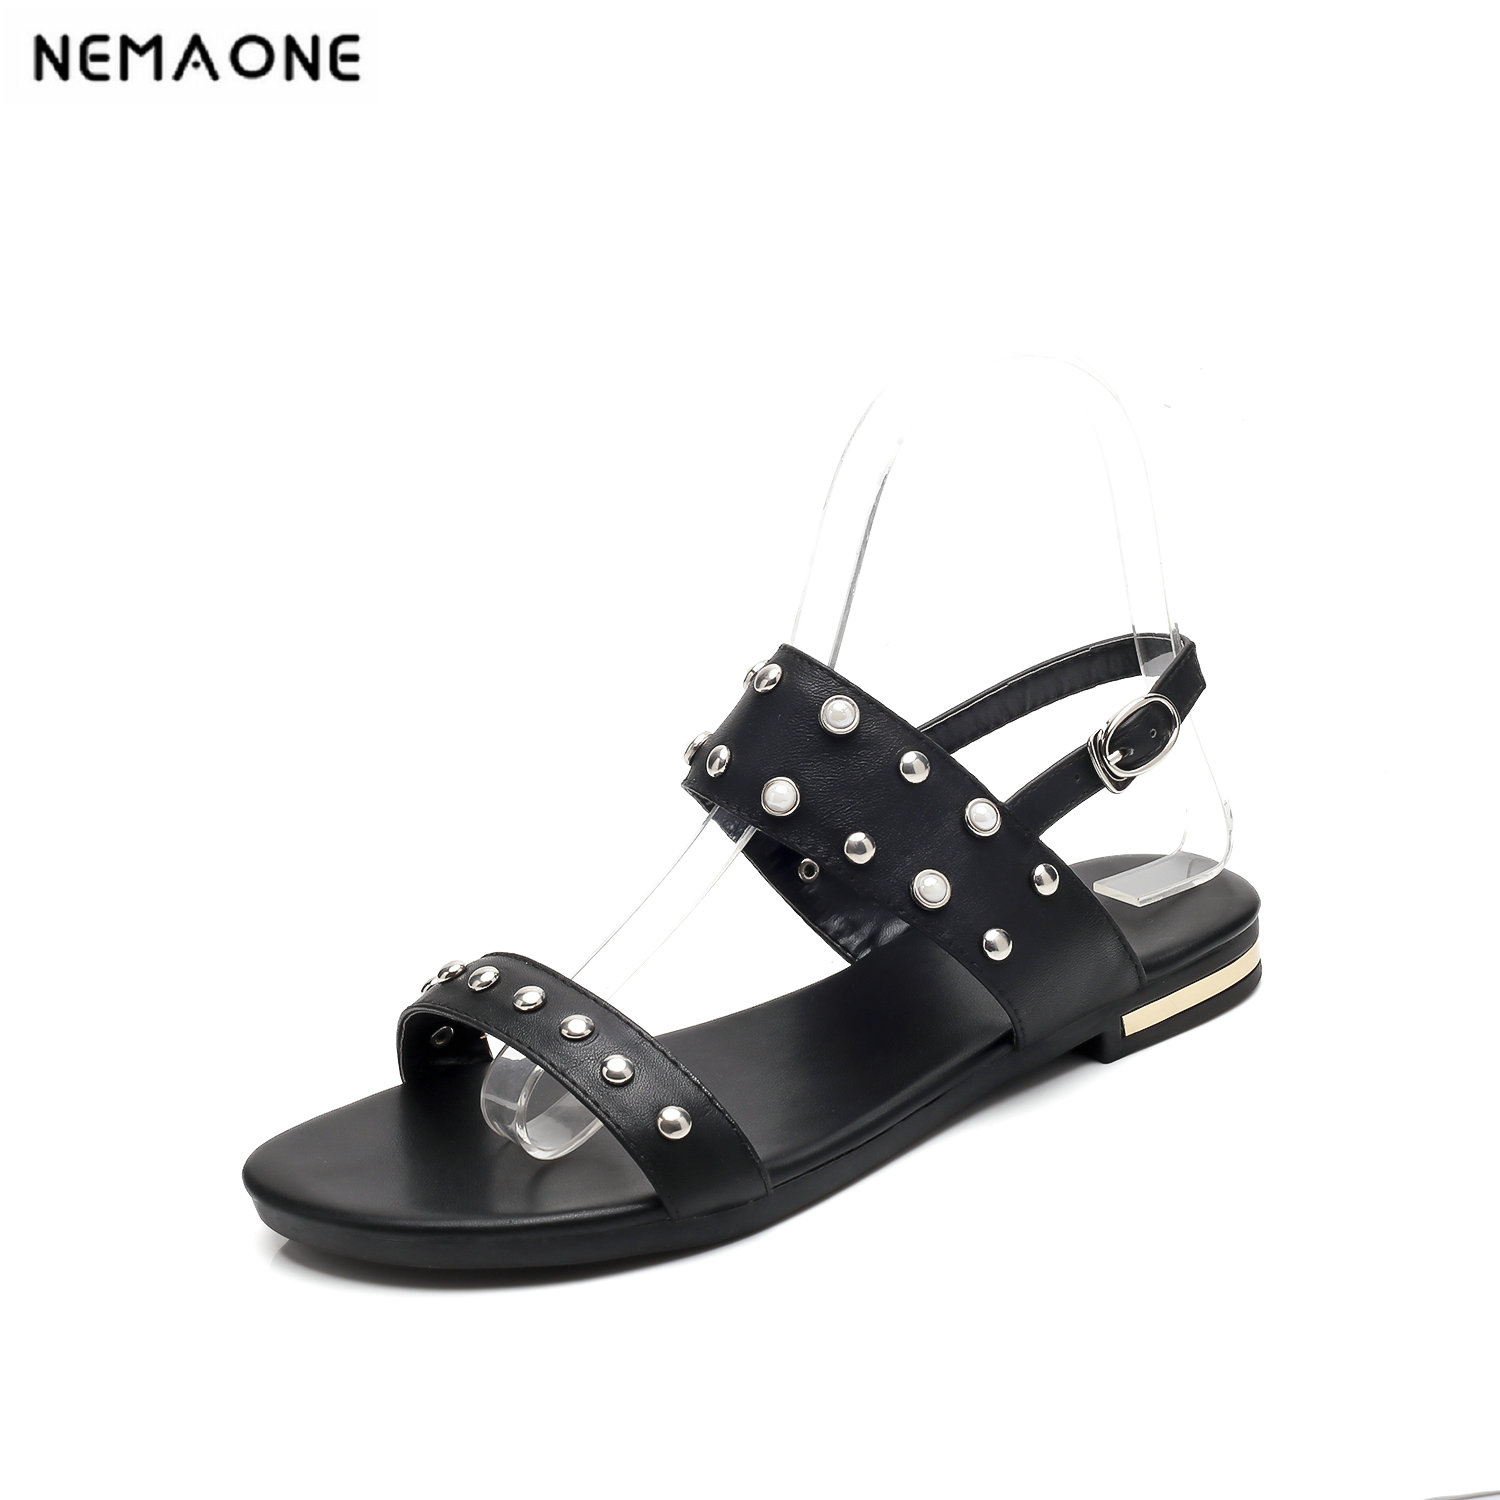 NEMAONE New genuine leather rivets women sandals flat shoes woman back strap summer shoes girl's sandals phyanic 2017 summer new women sandals with chain women buckle strap flat platform summer casual shoes woman phy3413